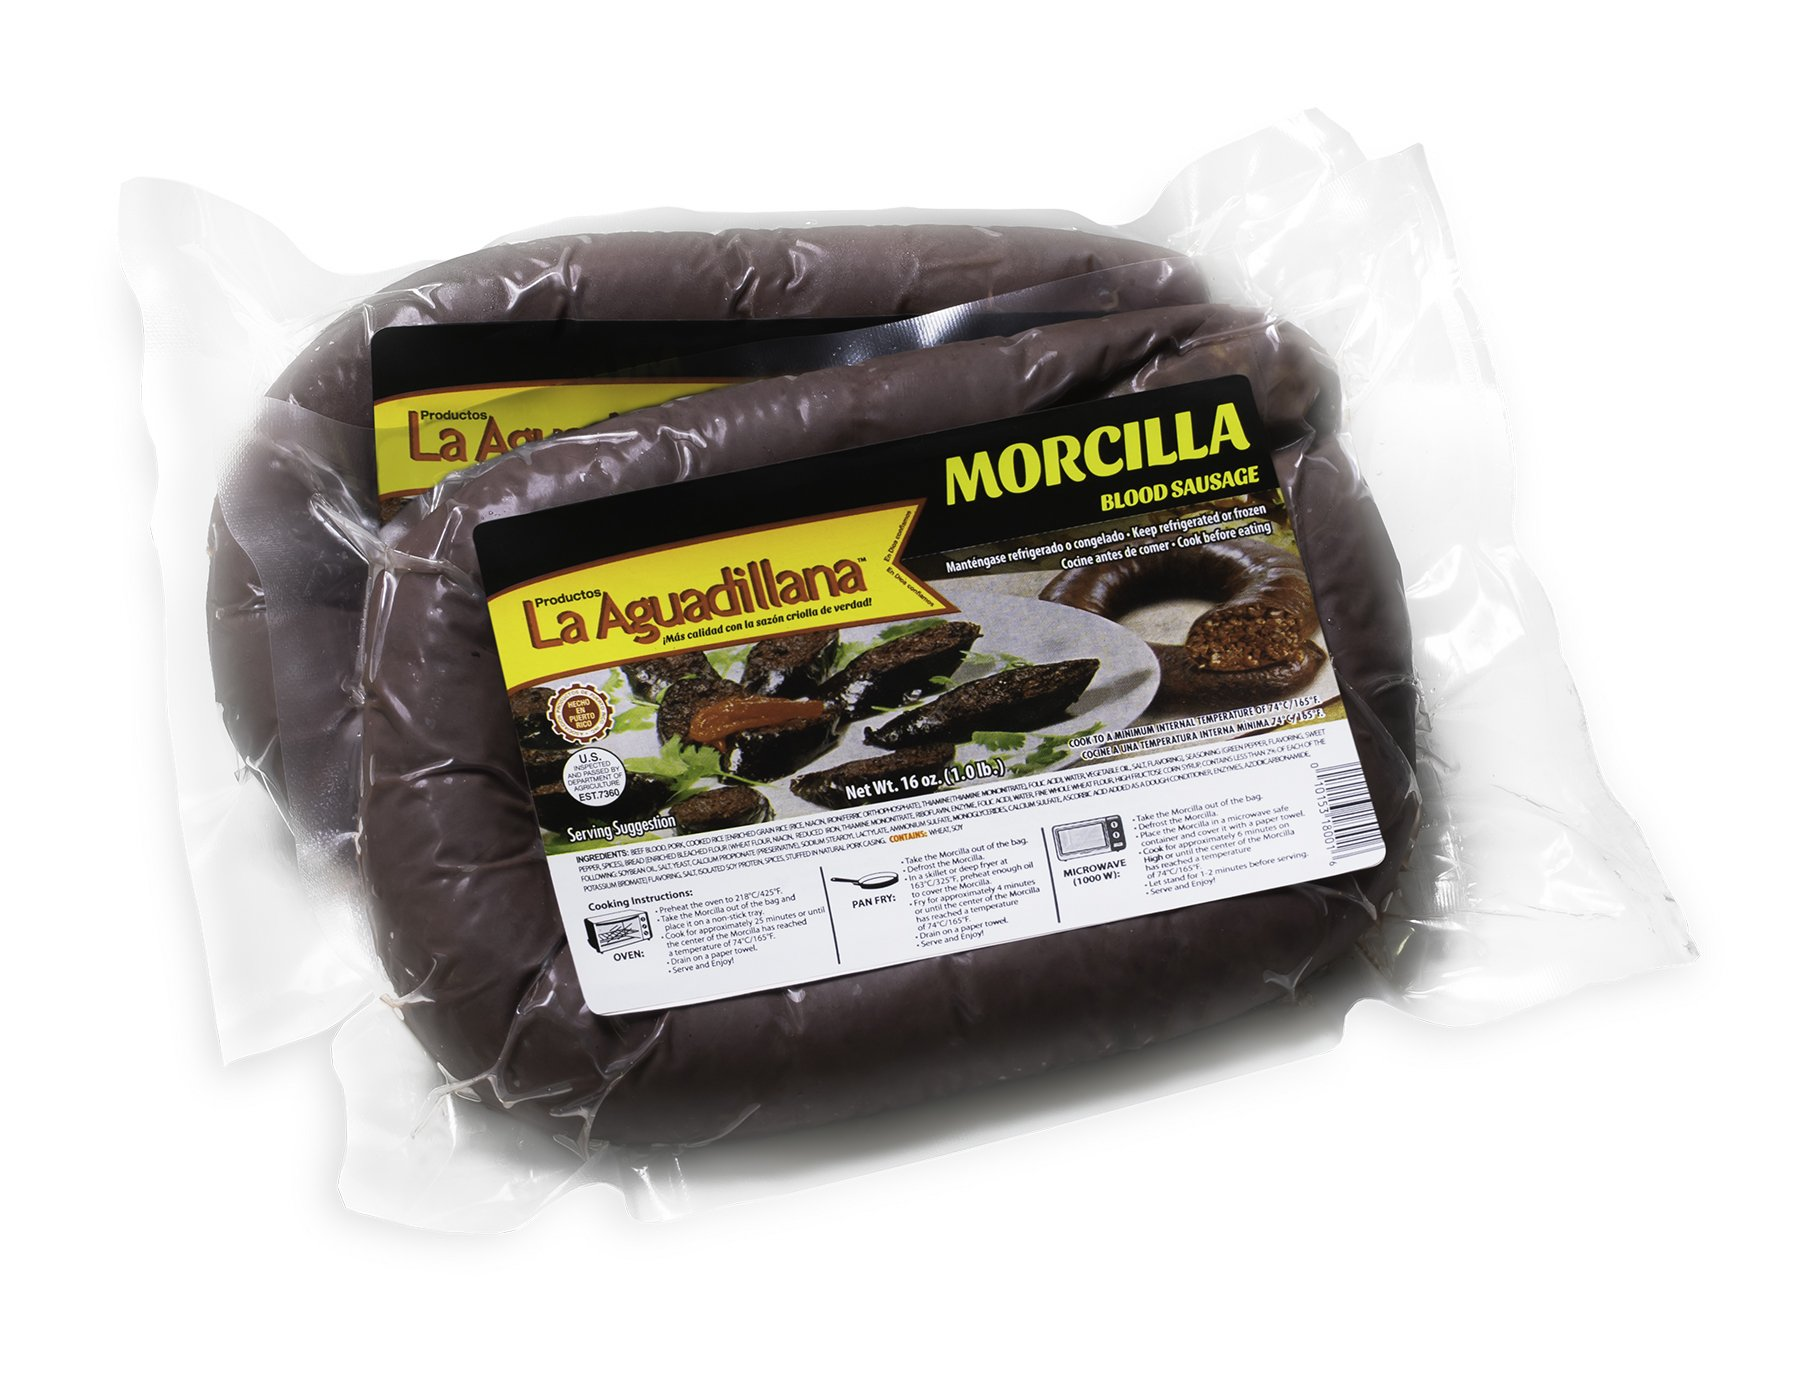 MORCILLA - Blood Sausage Puerto Rico Style - 1lb Pack (Count of 1)